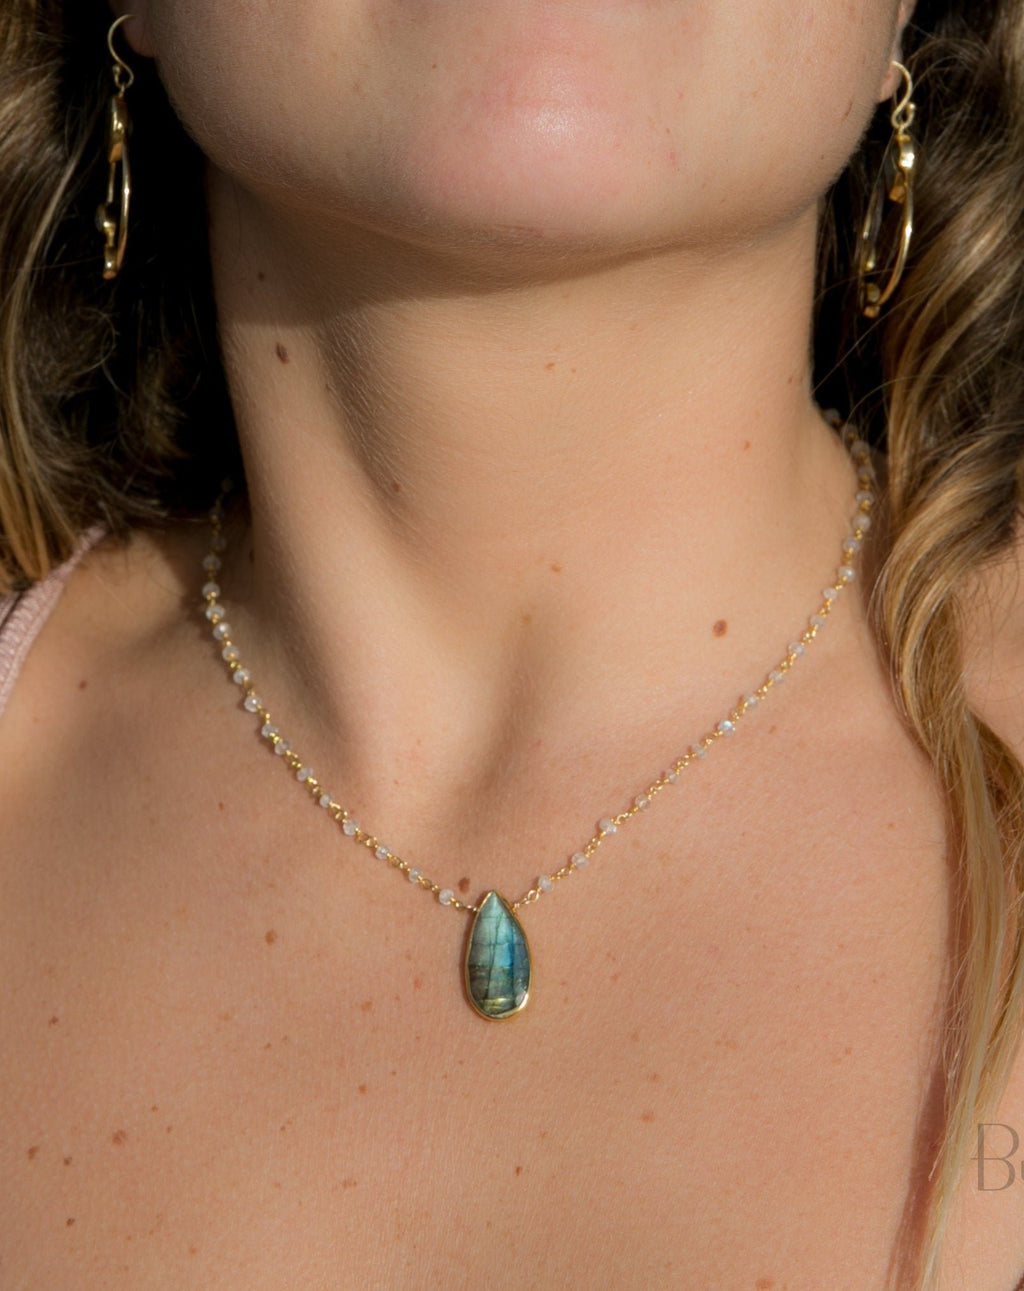 Luana Necklace * Labradorite & Moonstone * Gold Vermeil * BJN070